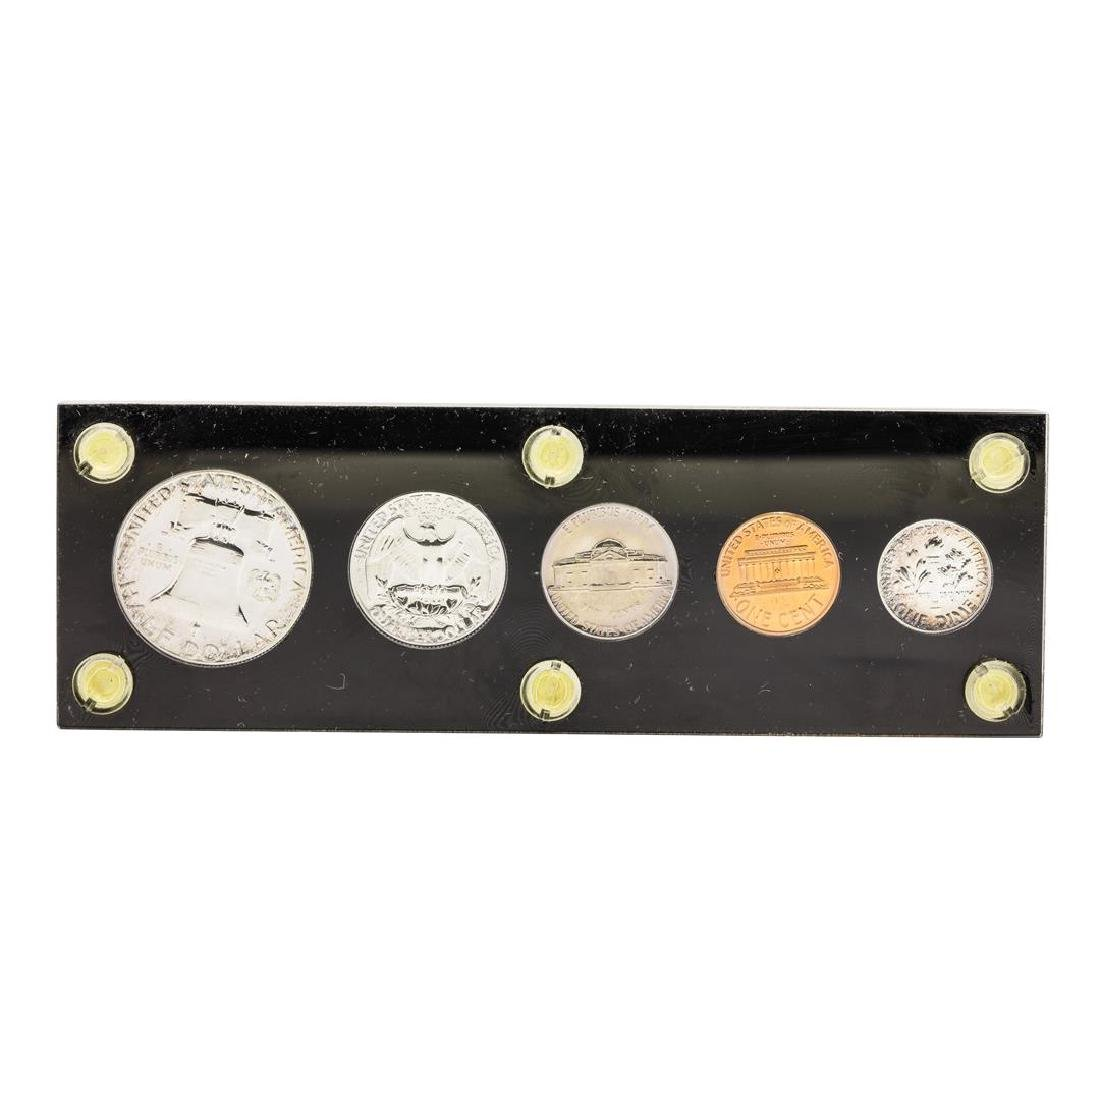 1961 (5) Coin Proof Set - 2